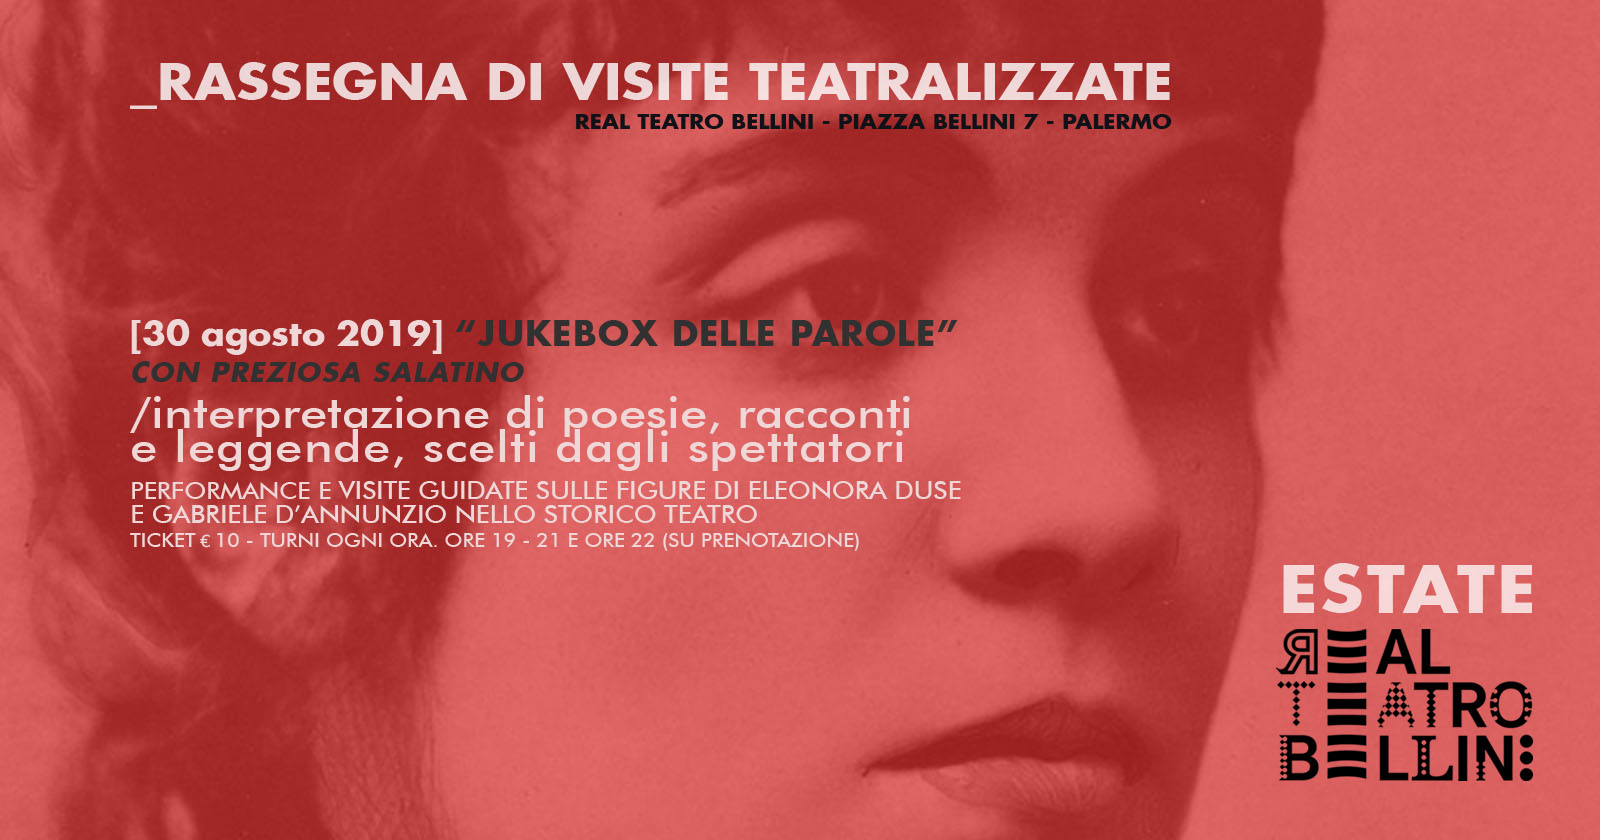 Estate al teatro Bellini